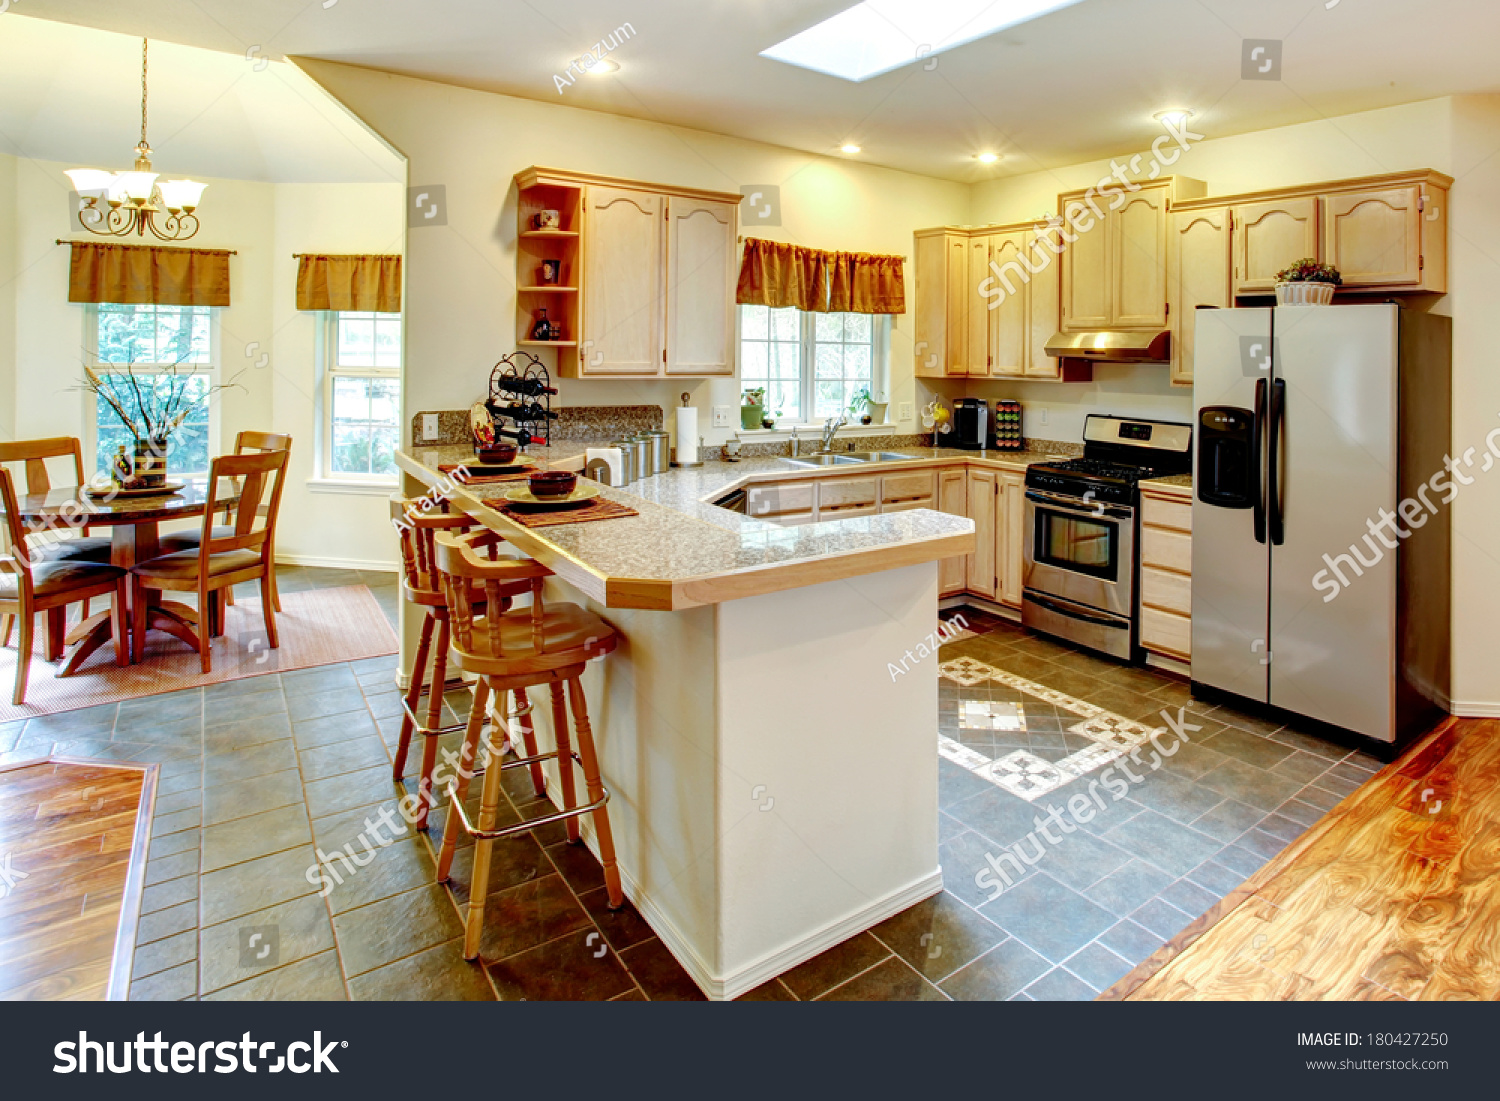 Bright Kitchen Room With Maple Storage Cabinets And Stainless Steel Appliances View Of Dining Area